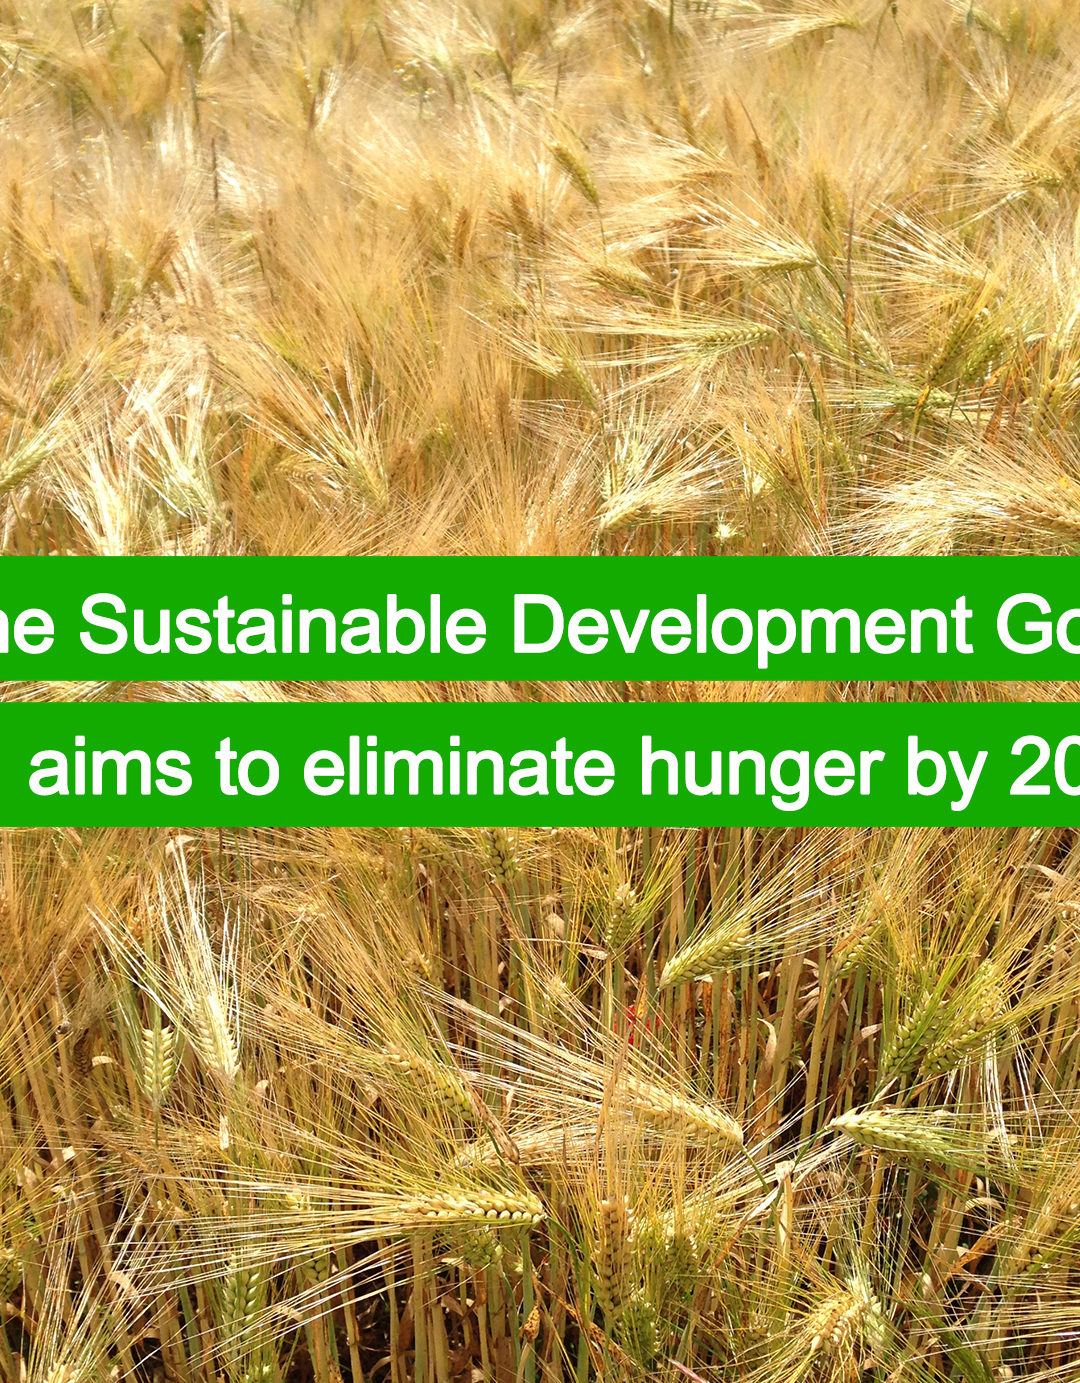 Zero hunger by 2030?